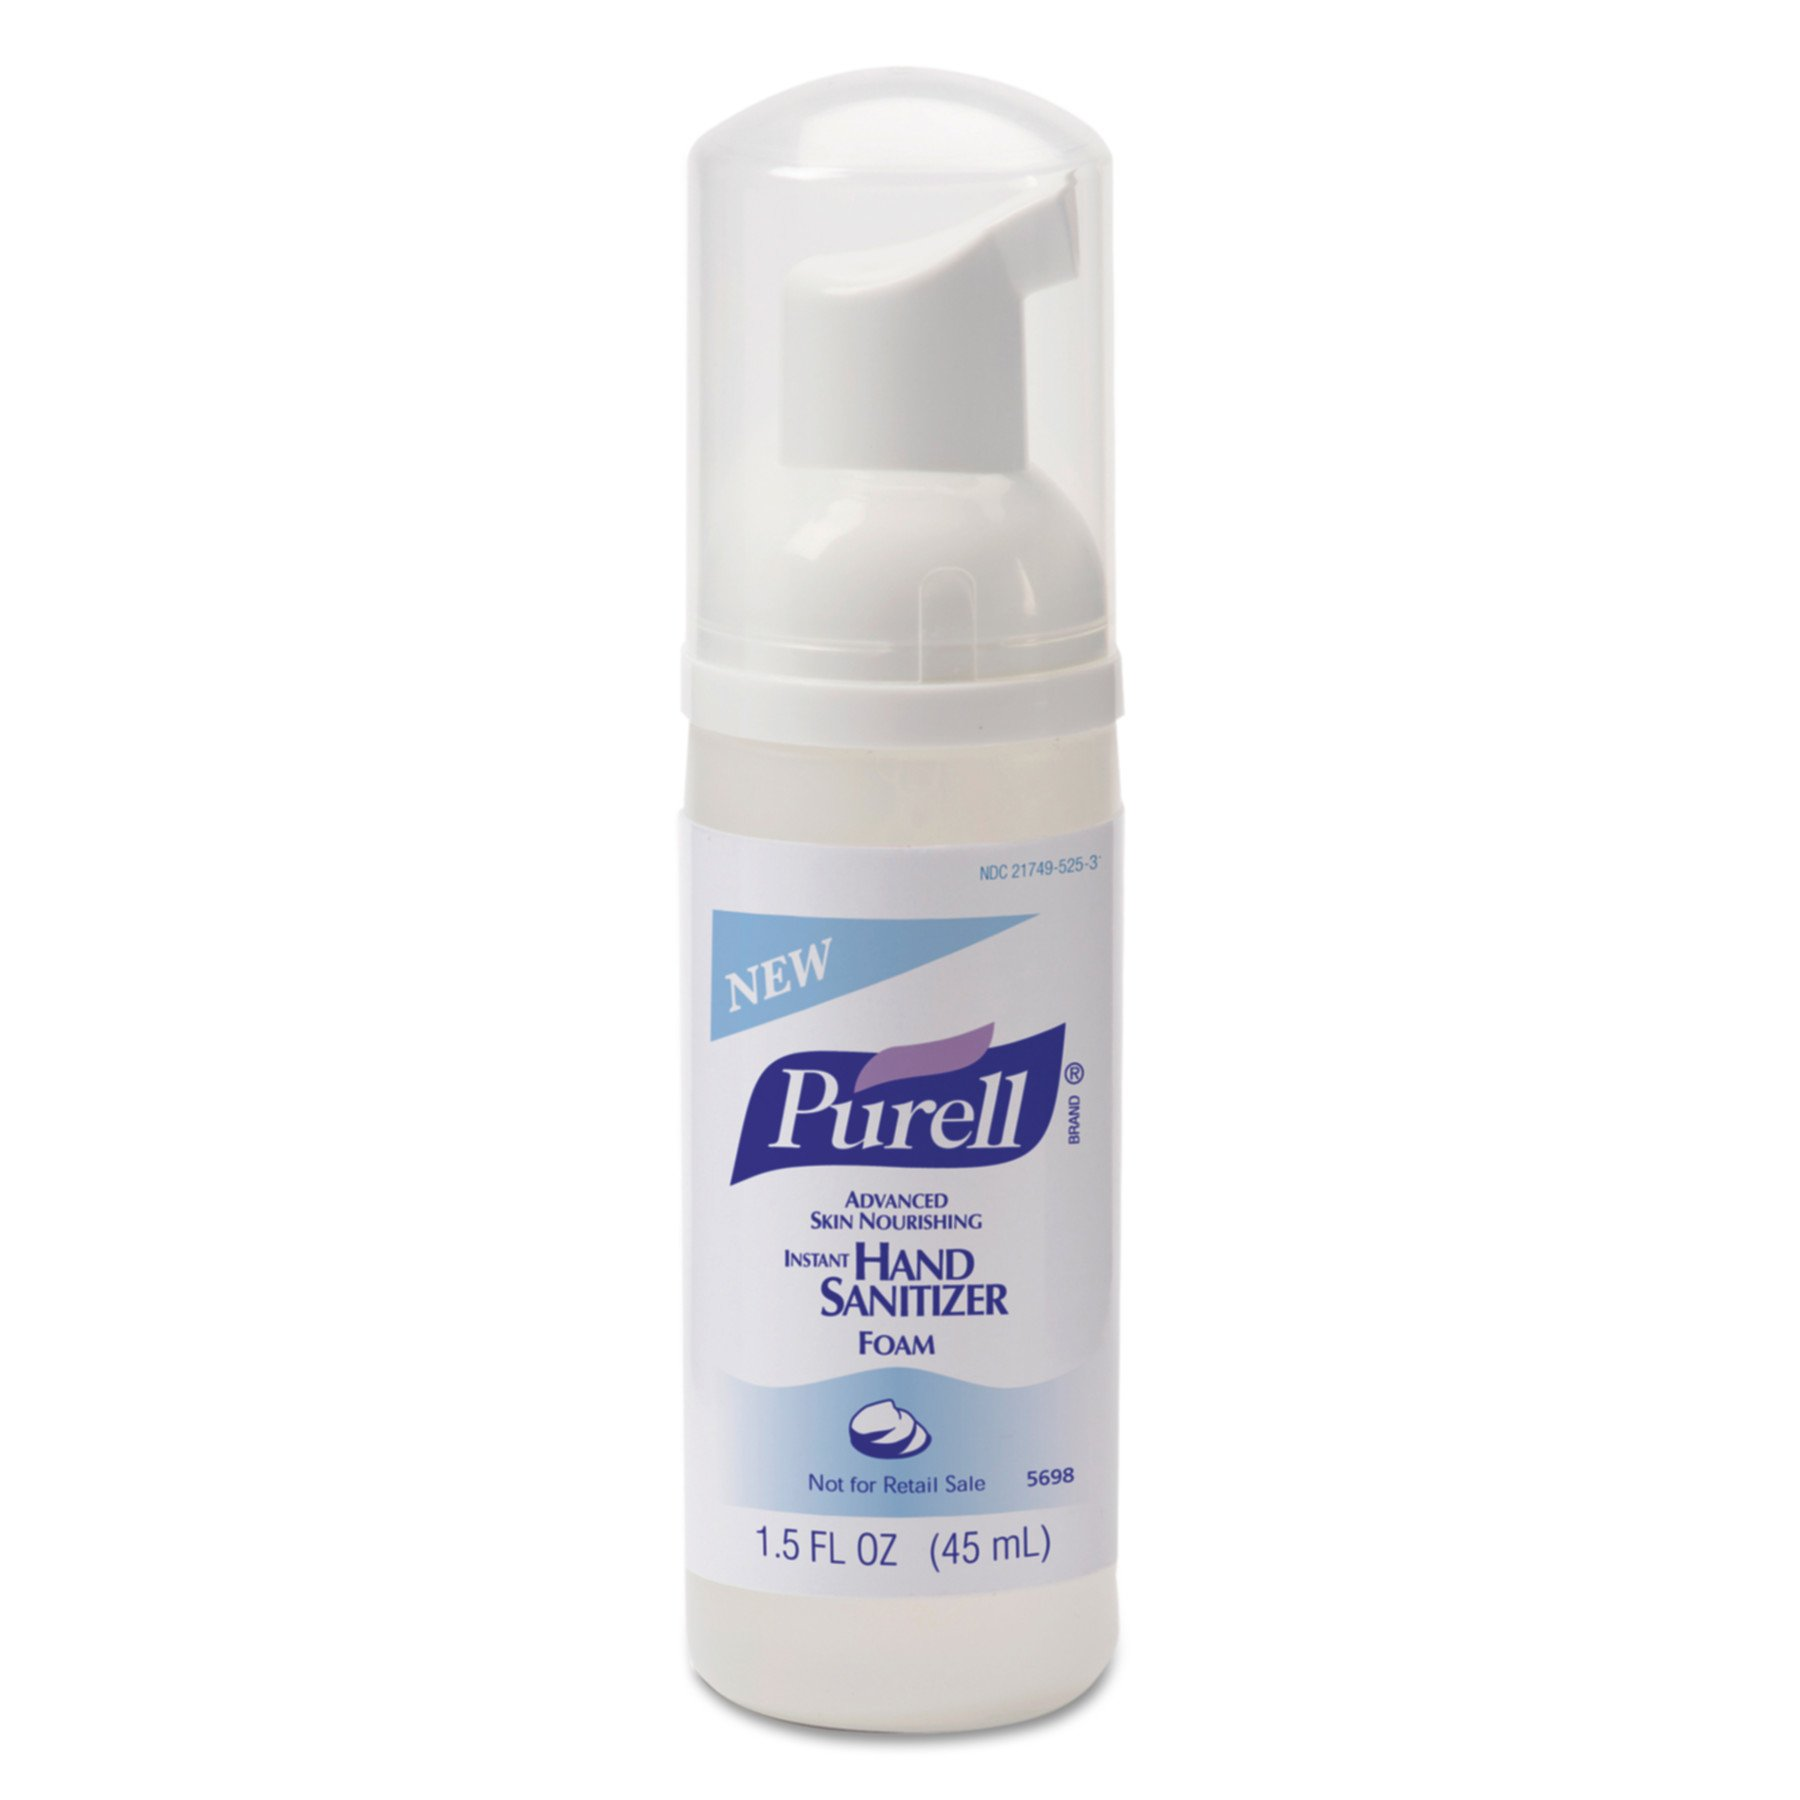 PURELL 569824 Instant Hand Sanitizer Skin Nourishing Foam, 45mL (Case of 24) by Purell